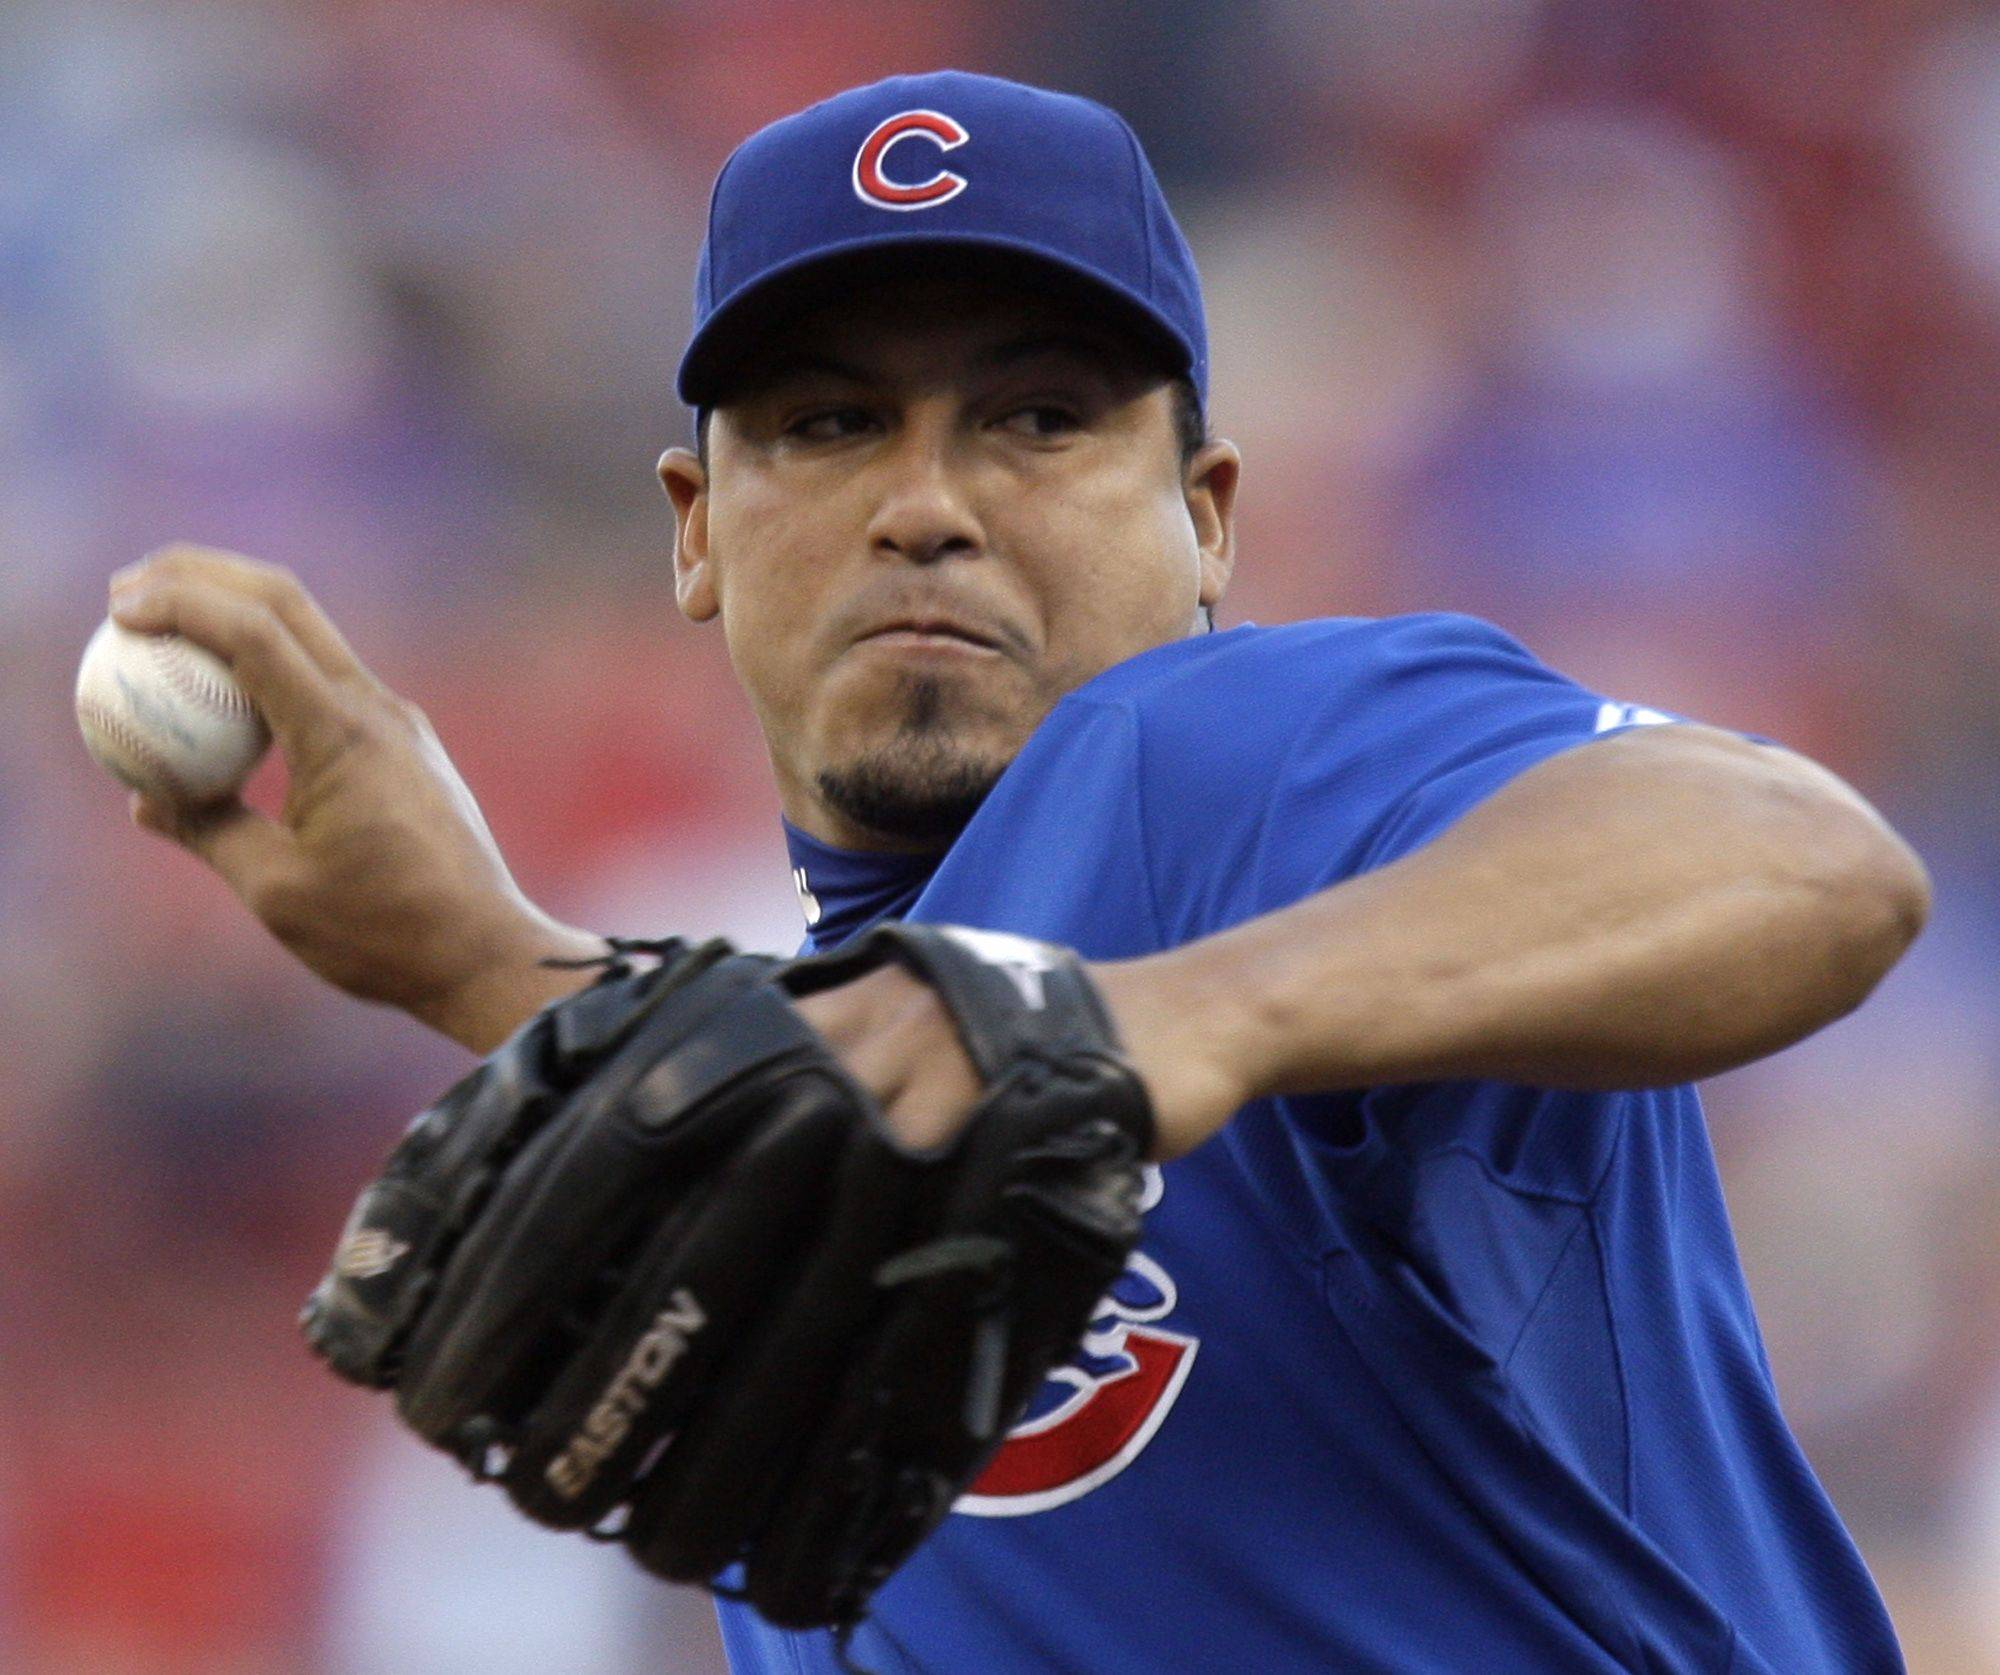 With $36 million guaranteed on his contract, and a $19 million option for 2013, would Cubs starter Carlos Zambrano consider waiving his no-trade clause to join the Yankees or Rangers?